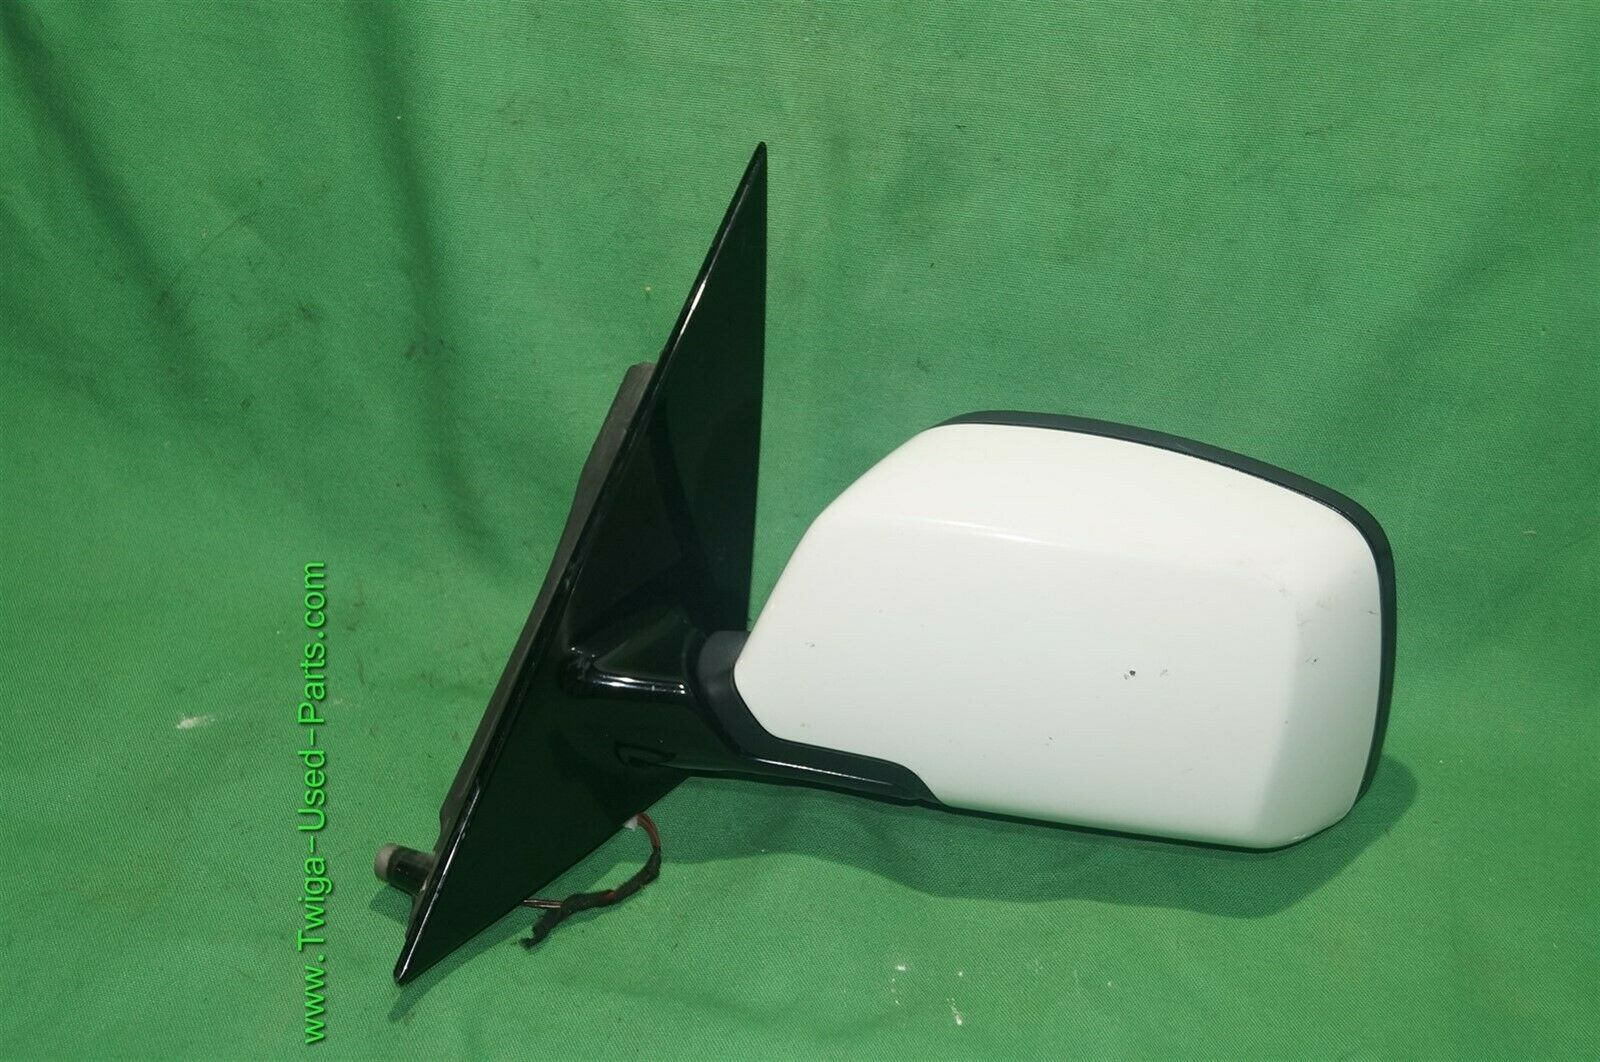 04-06 BMW X3 Side View Door Mirror Driver Left Side - LH (3 Wire Ribbon)